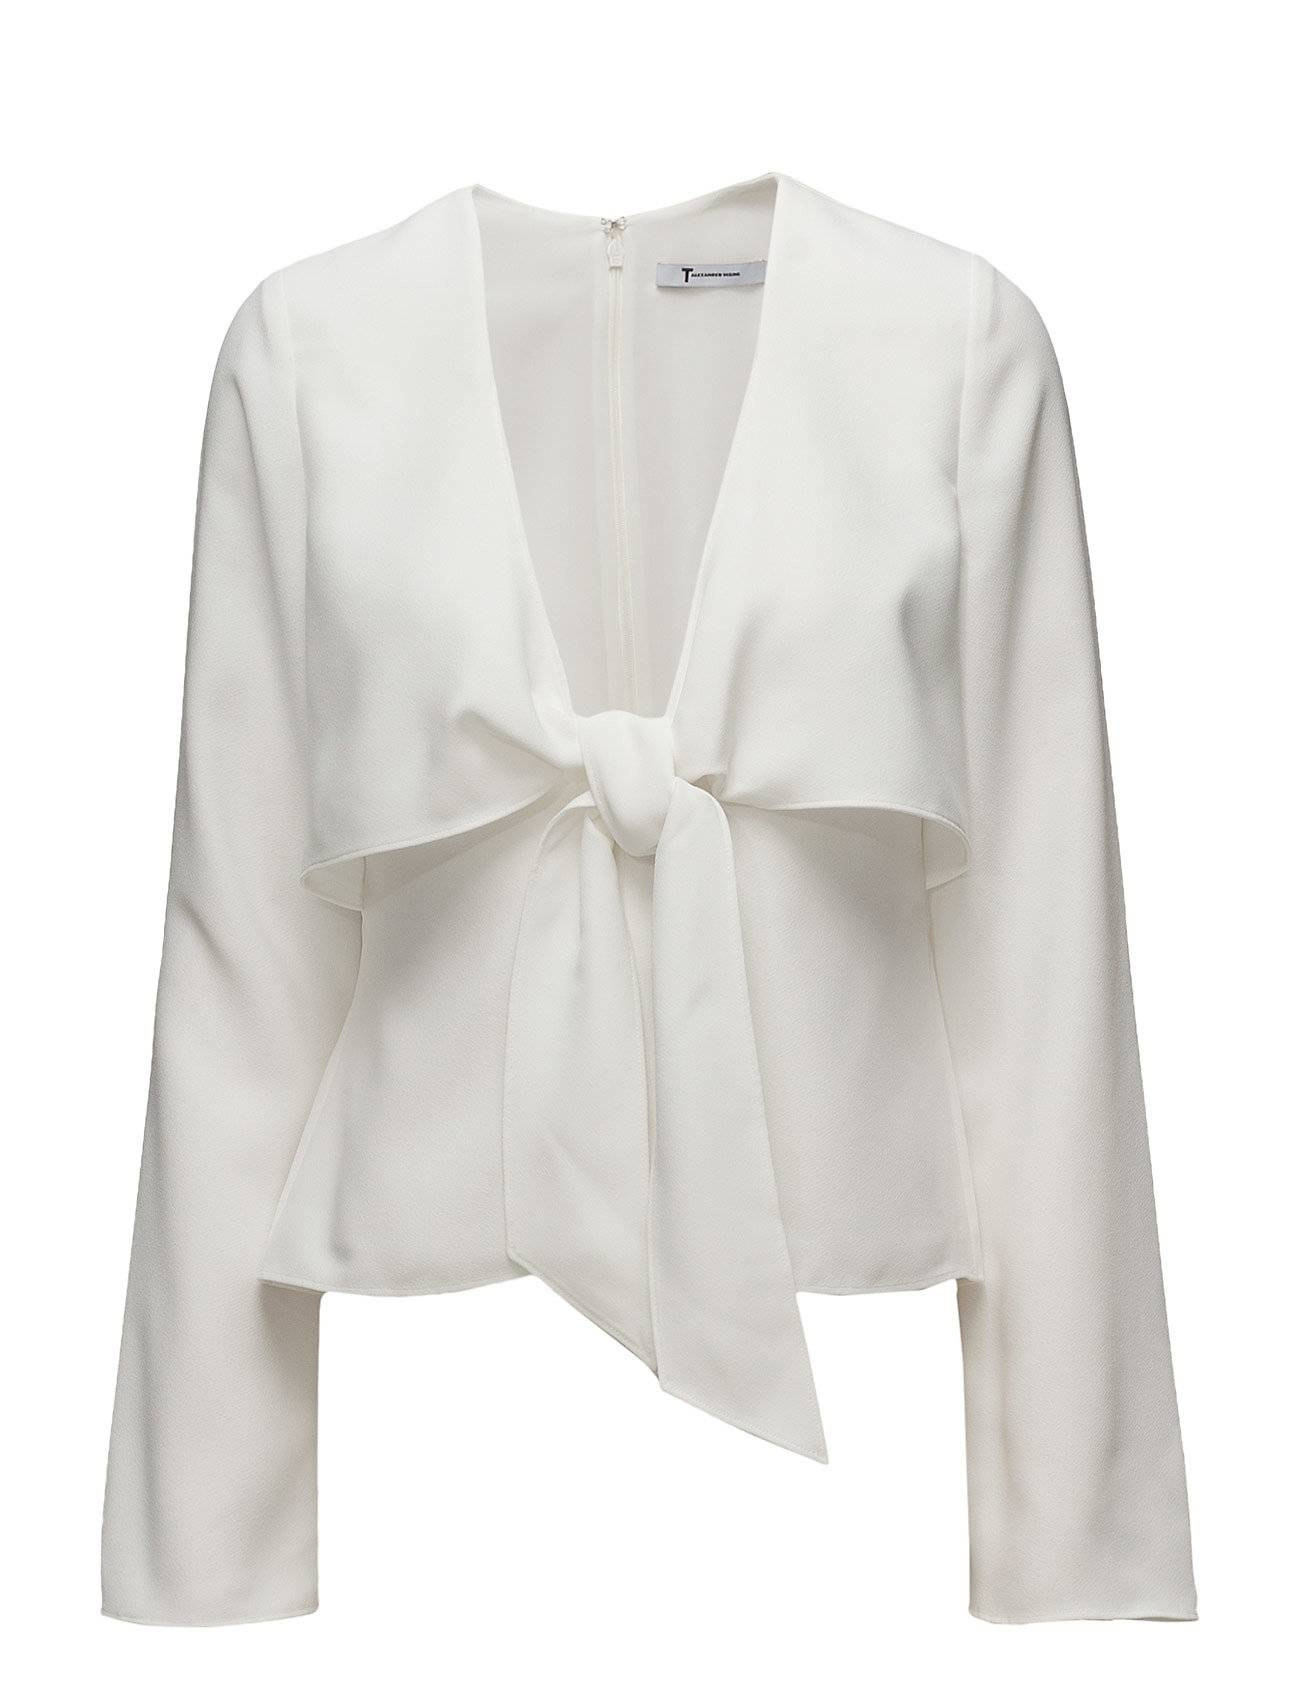 T by Alexander Wang L/S Tie Front Shirt